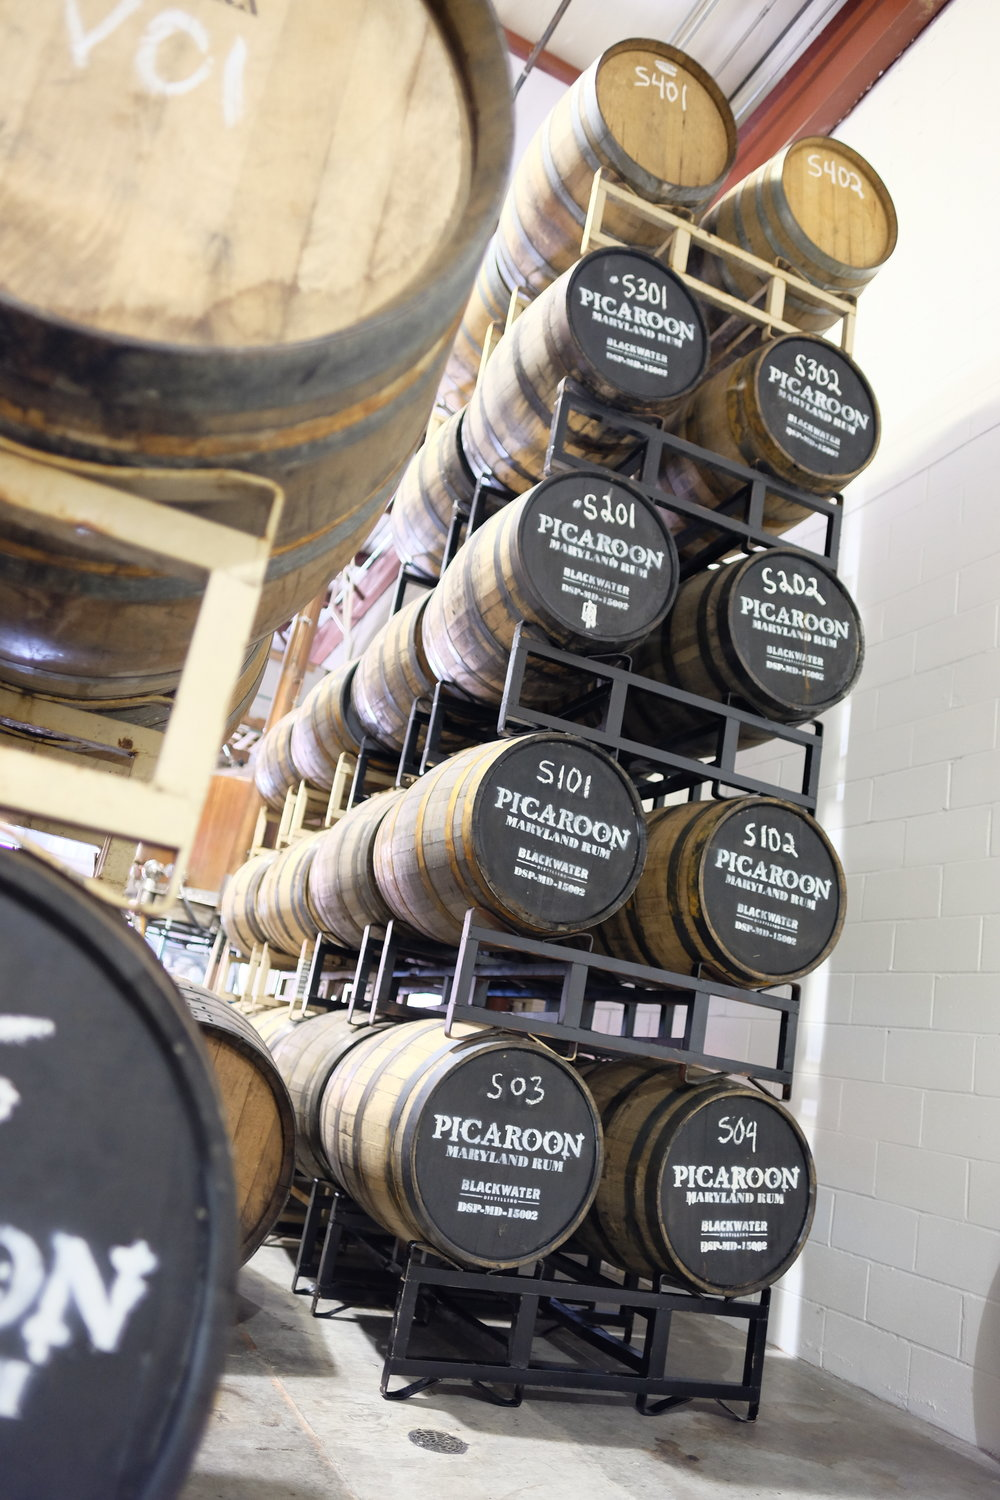 The five-level Picaroon solera at Blackwater Distilling